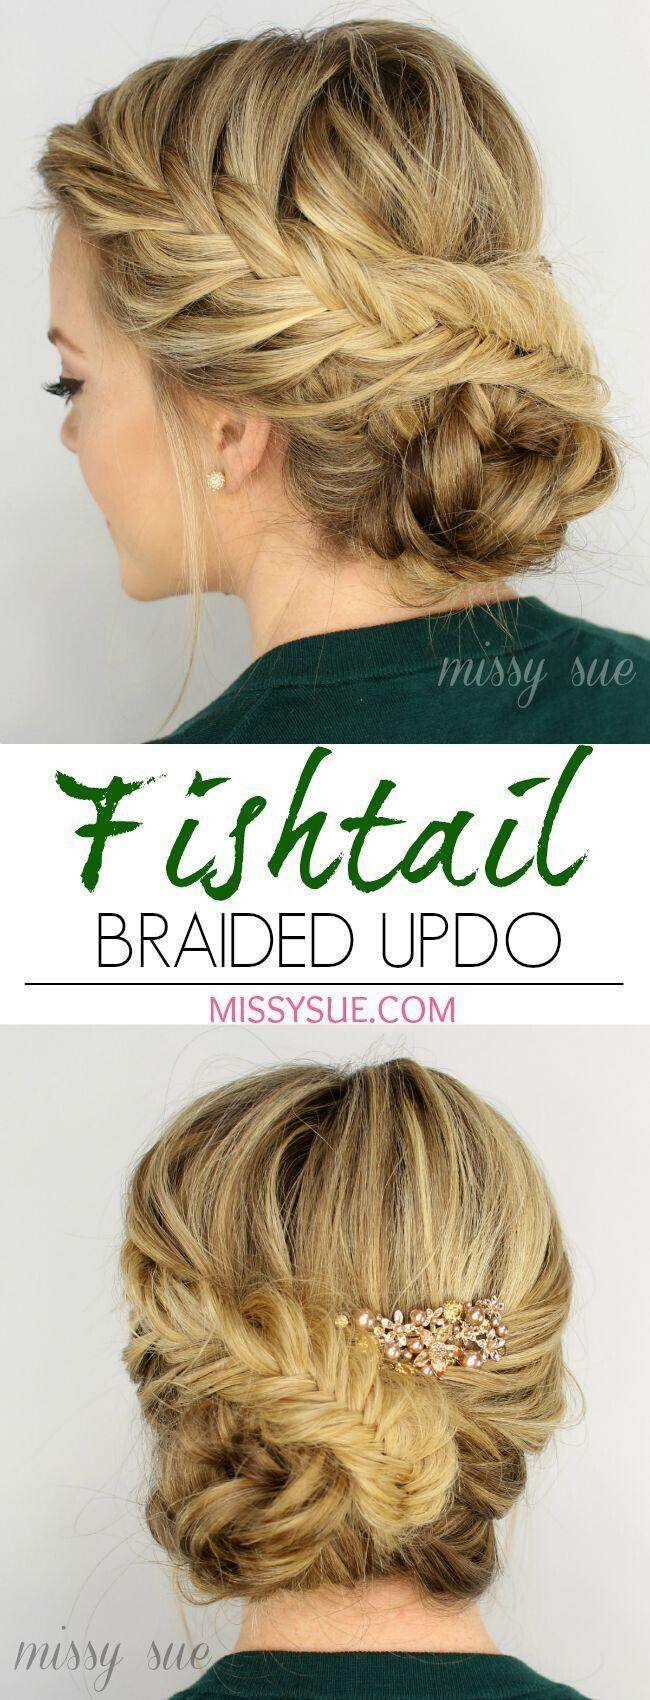 Mariage - 21 All-New French Braid Updo Hairstyles